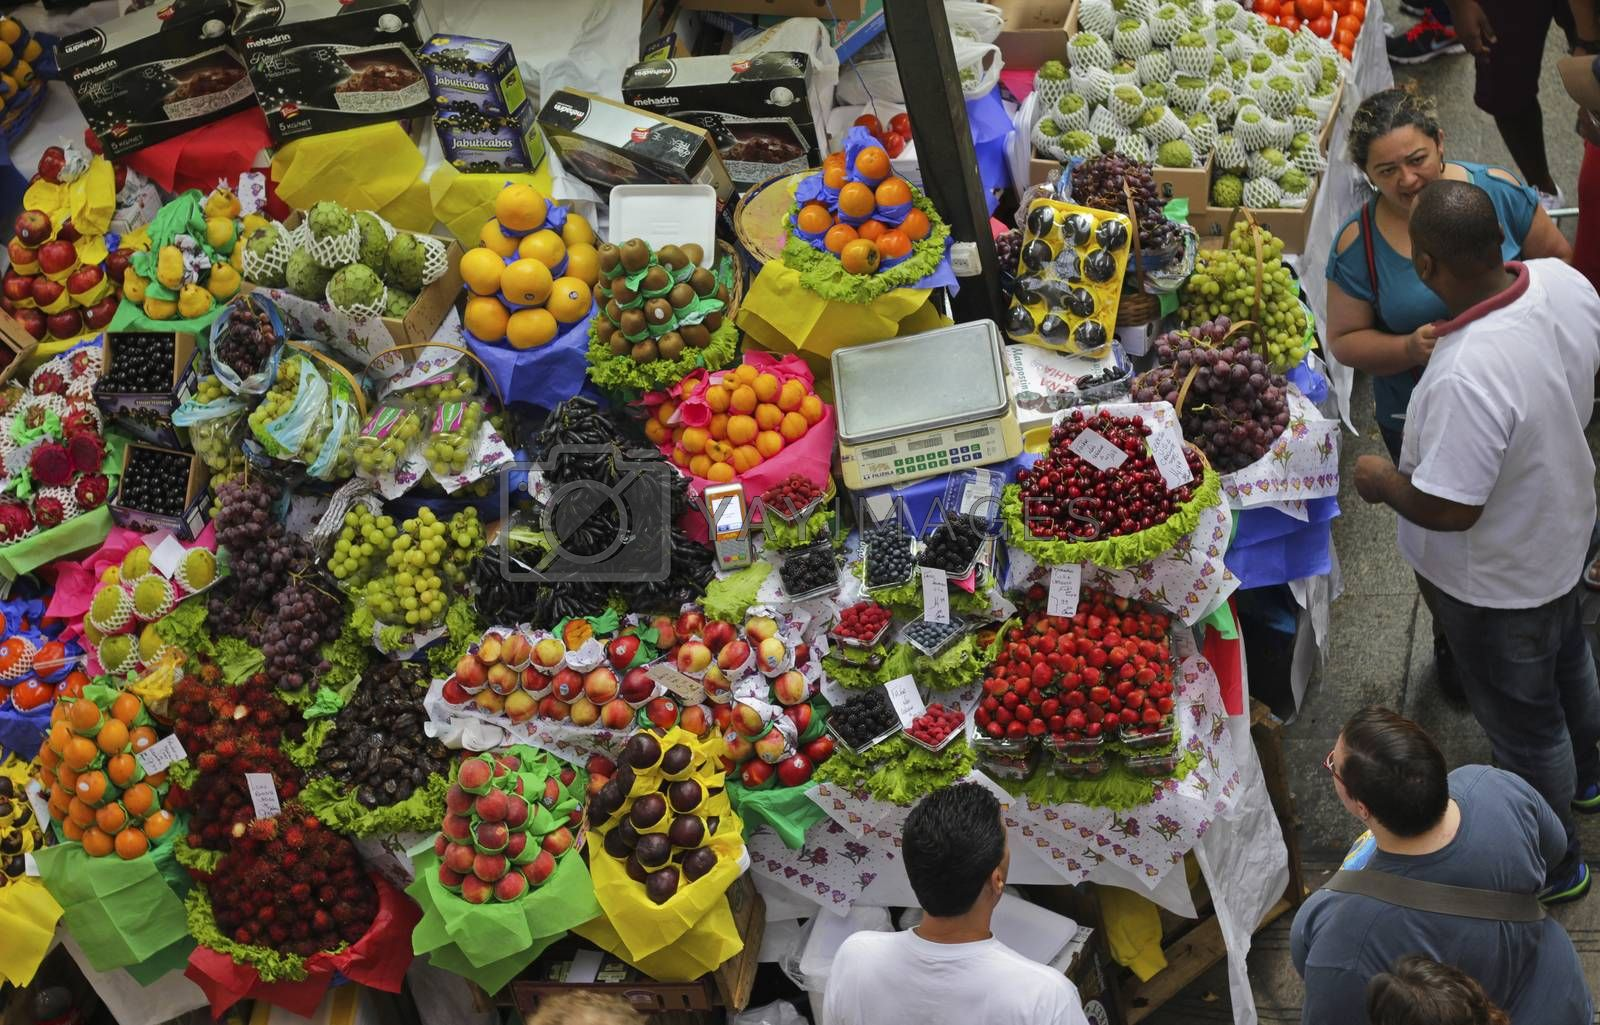 SAO PAULO/BRAZIL - MAY 9: An unidentified man at a fruit stand in Central Market of Sao Paulo on May 09, 2015. This landmark is a destination for tourists and locals.